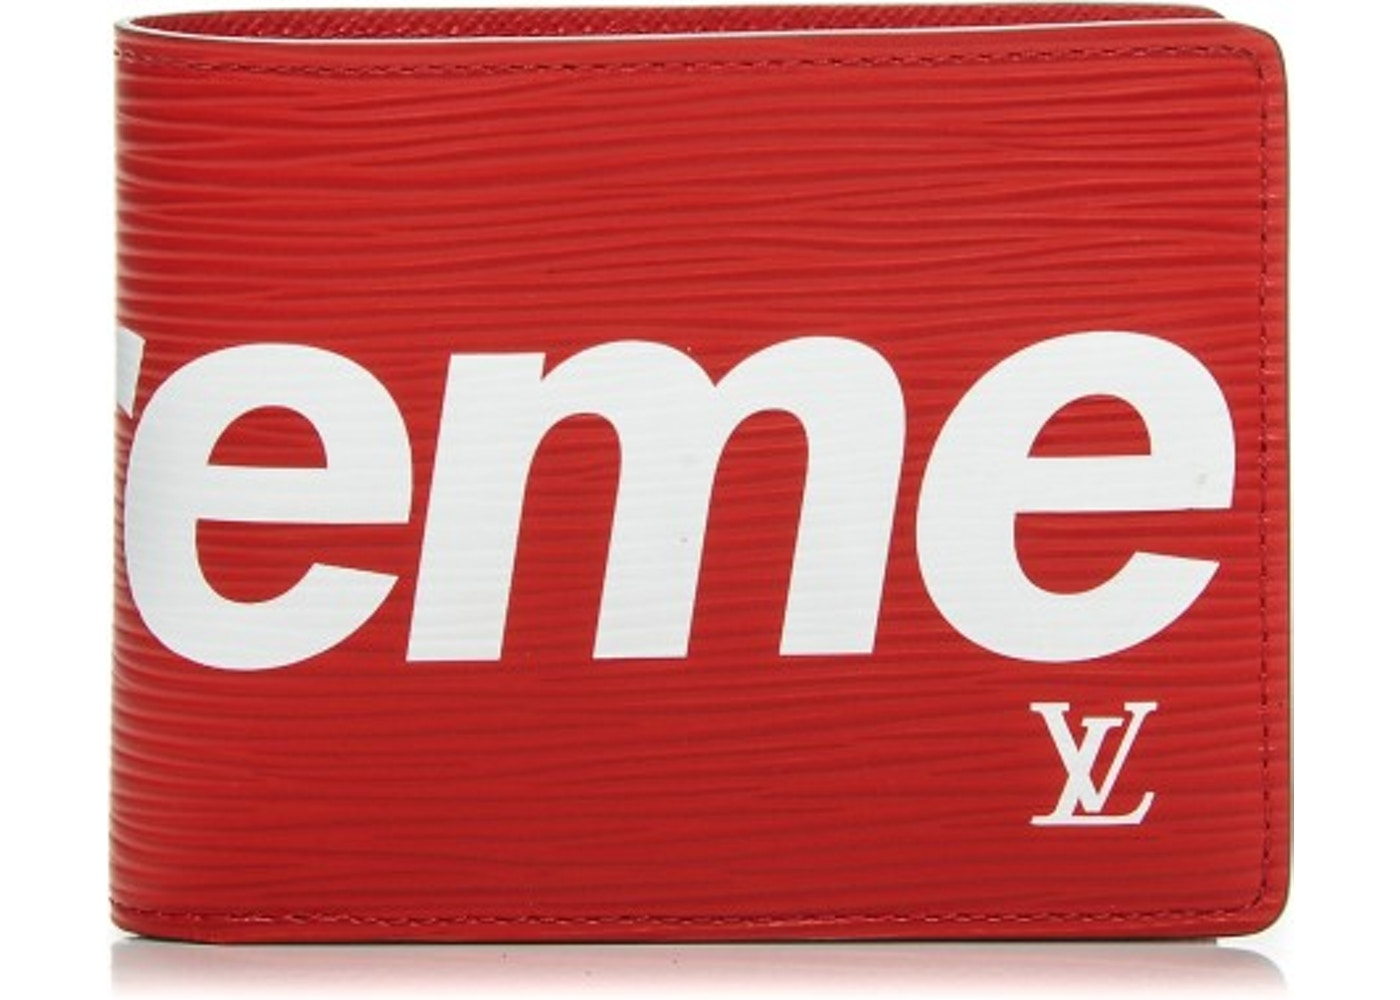 c123334a Louis Vuitton x Supreme Slender Wallet Epi Red